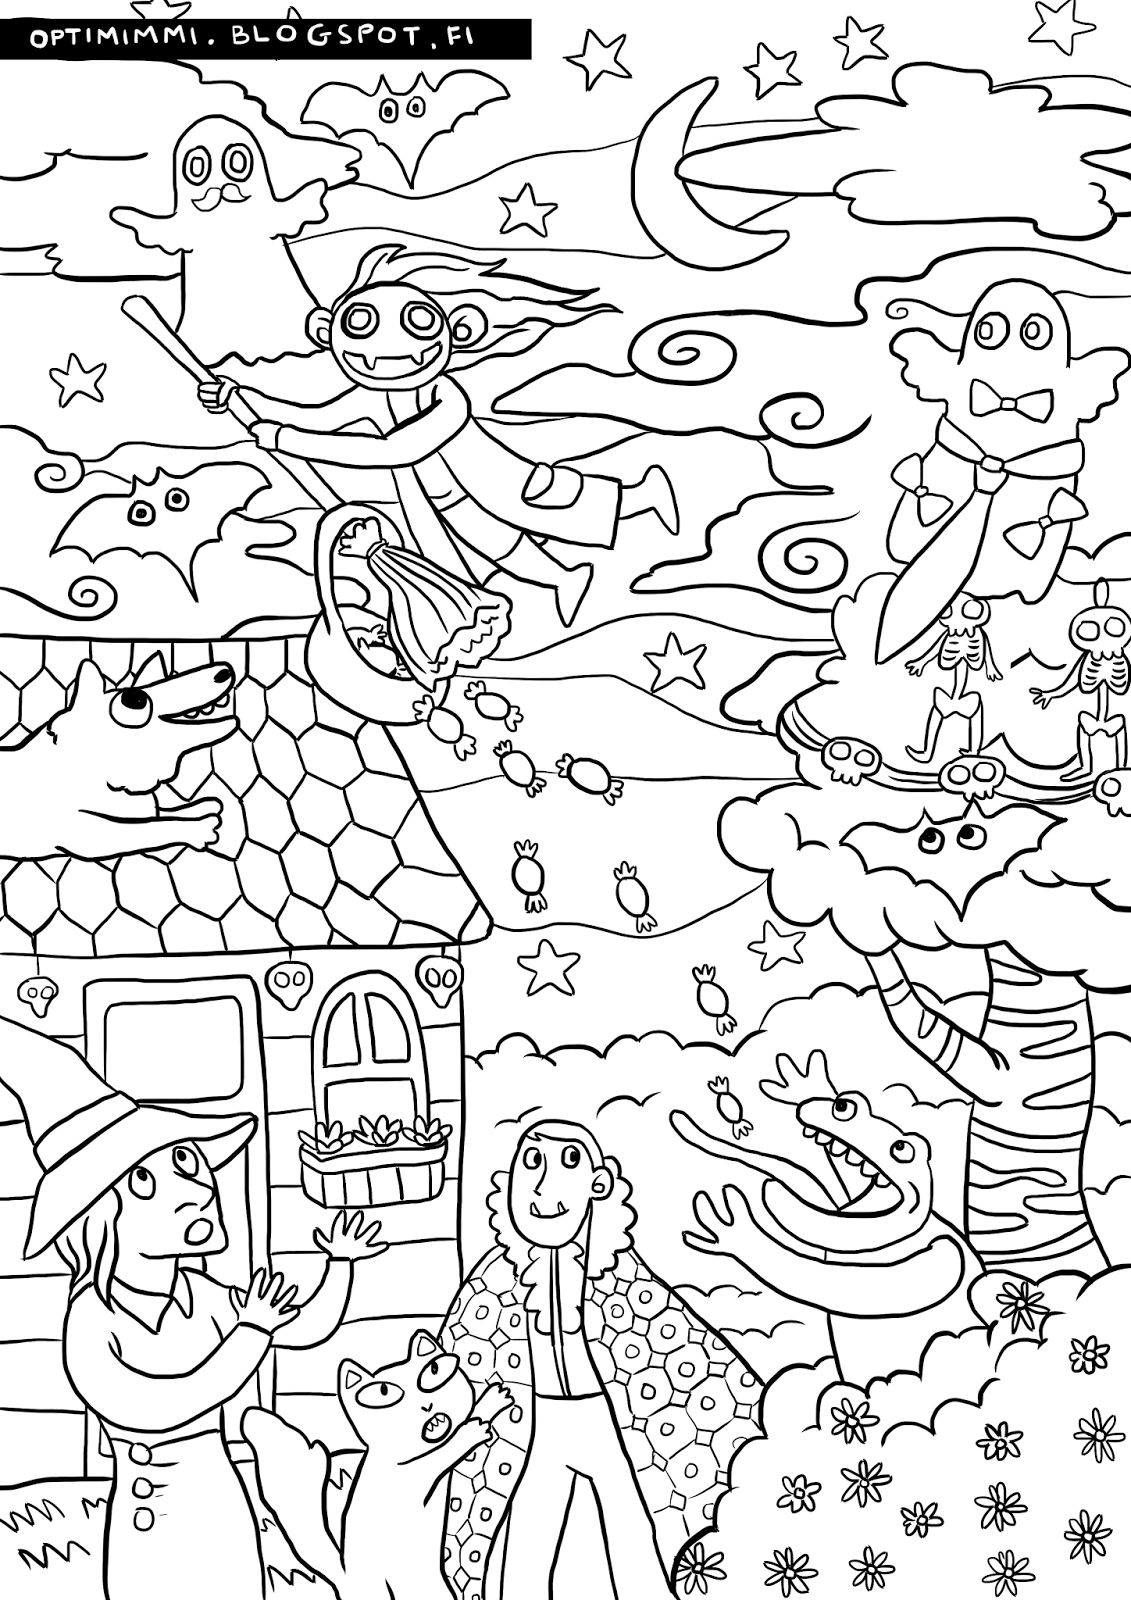 Optimimmi 2016 Coloring Pages 2016 Varityskuvat Coloring Pages Free Coloring Pages Color